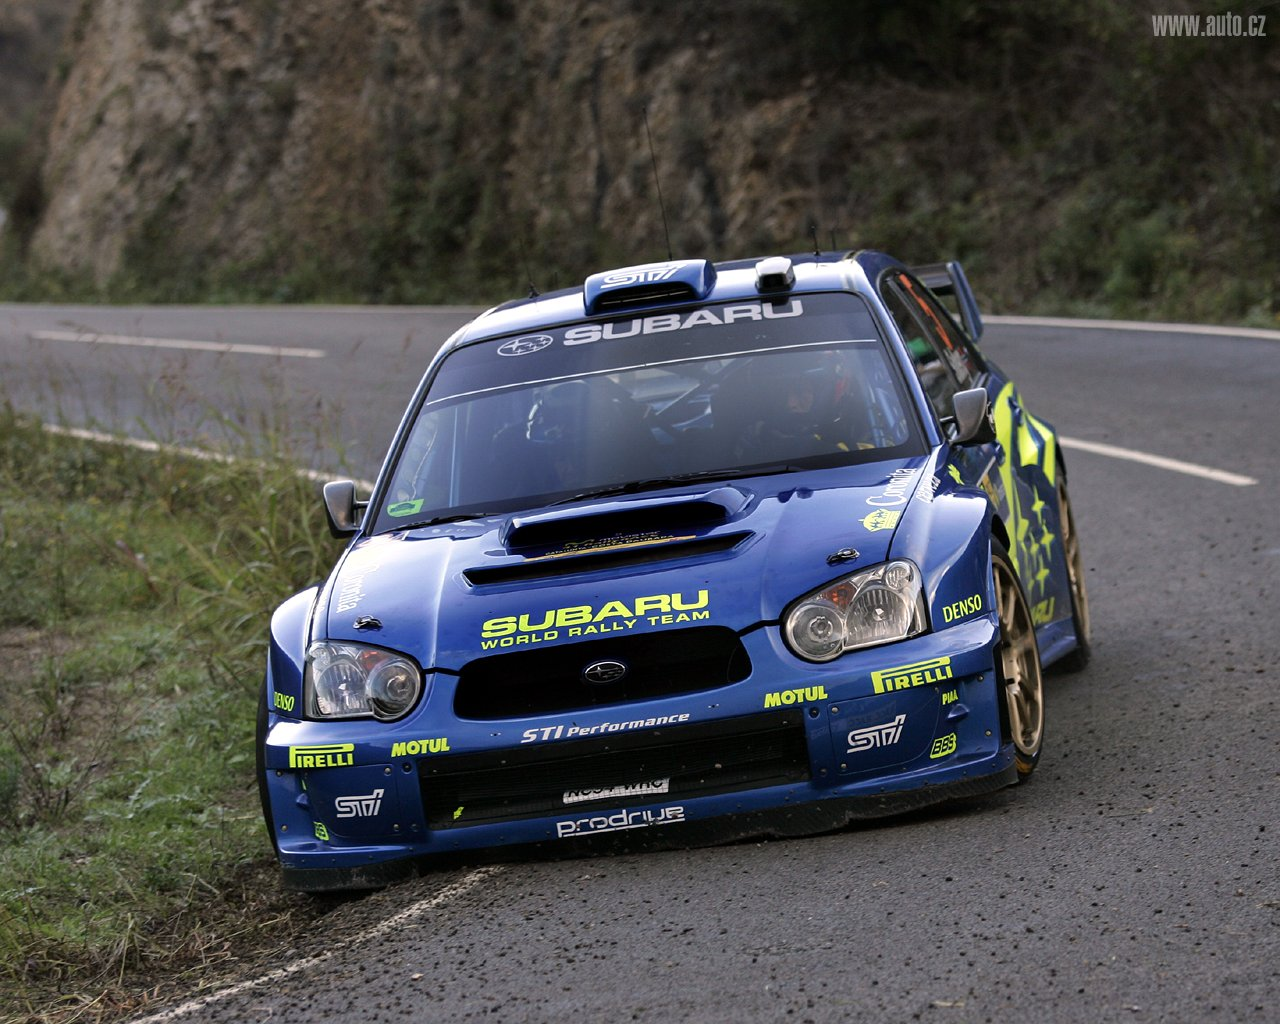 2012 Subaru Sti >> 2006 Subaru Impreza WRC Prototype | Car Photos Catalog 2019